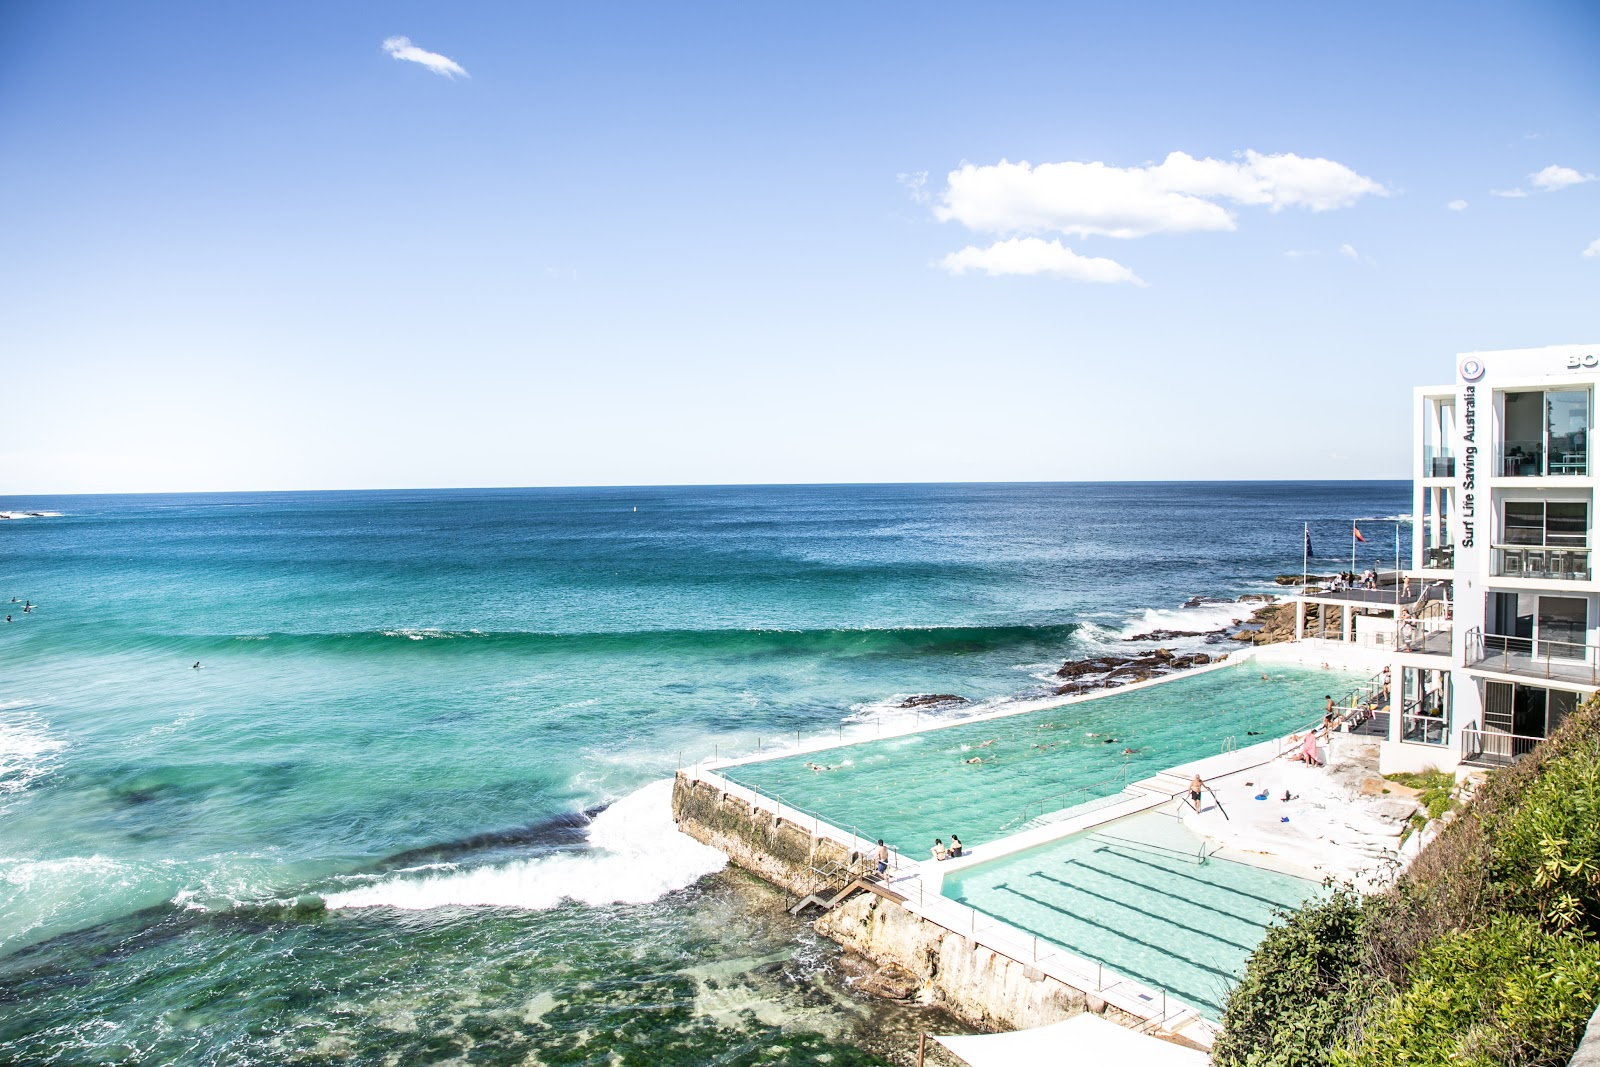 Sydney: Bondi Beach, Opera House and Darling Harbour